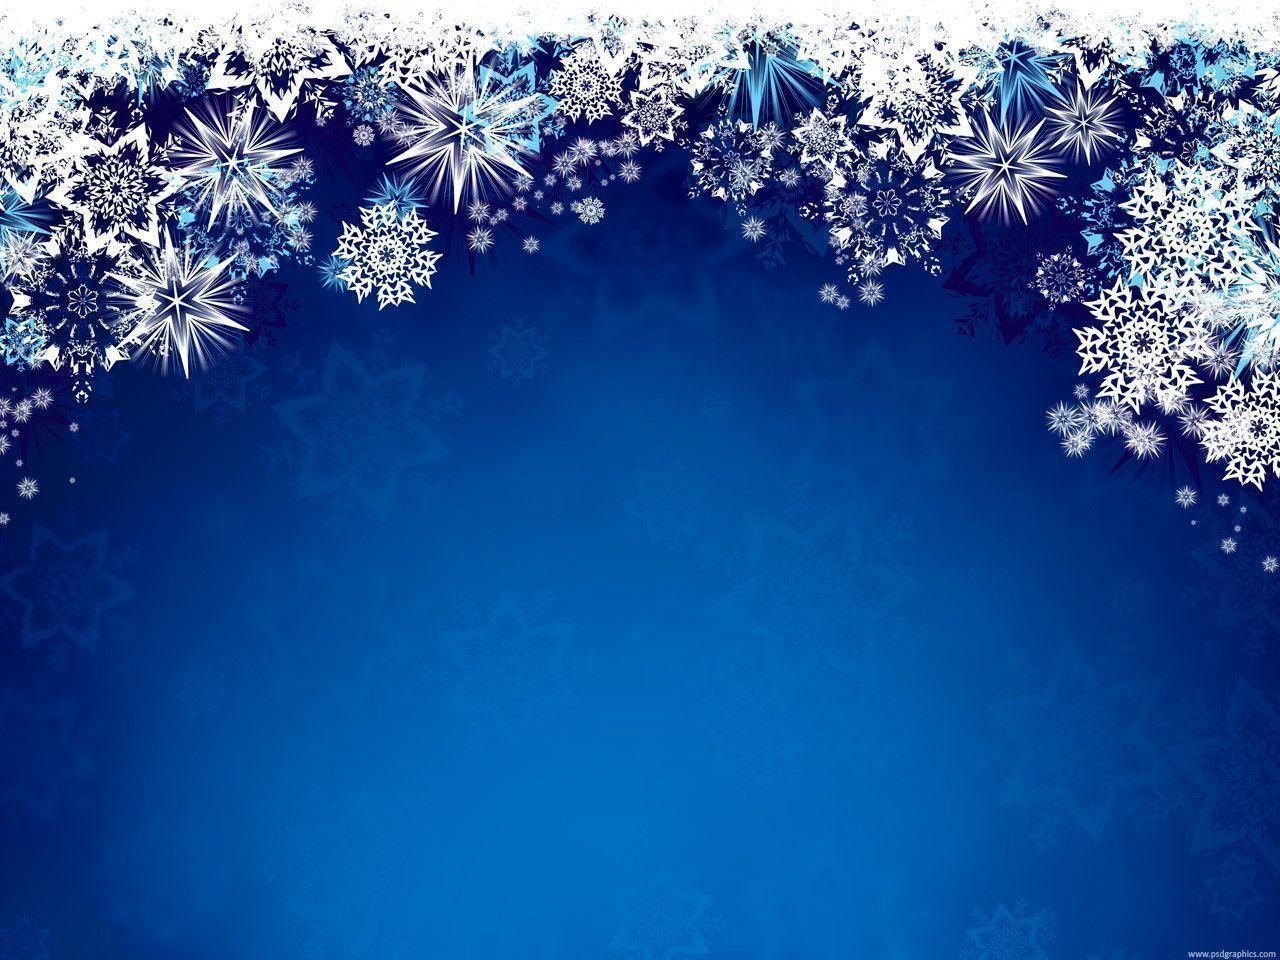 winter themed backgrounds - gse.bookbinder.co, Powerpoint templates